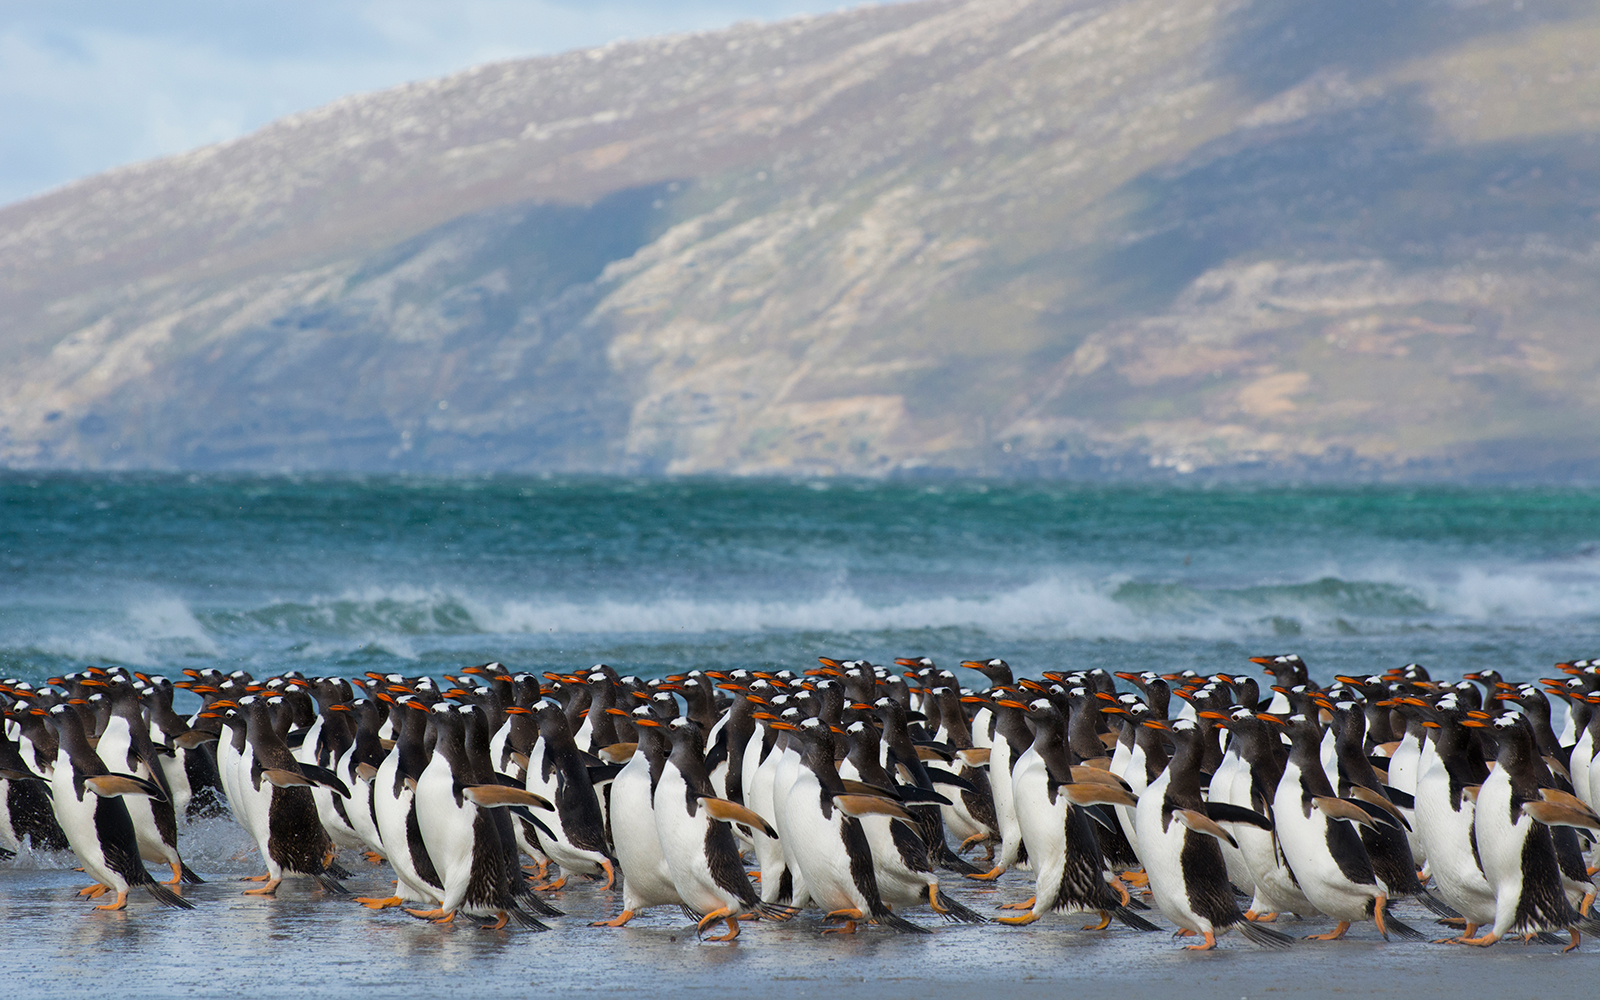 Where to See Penguins: Falkland Islands